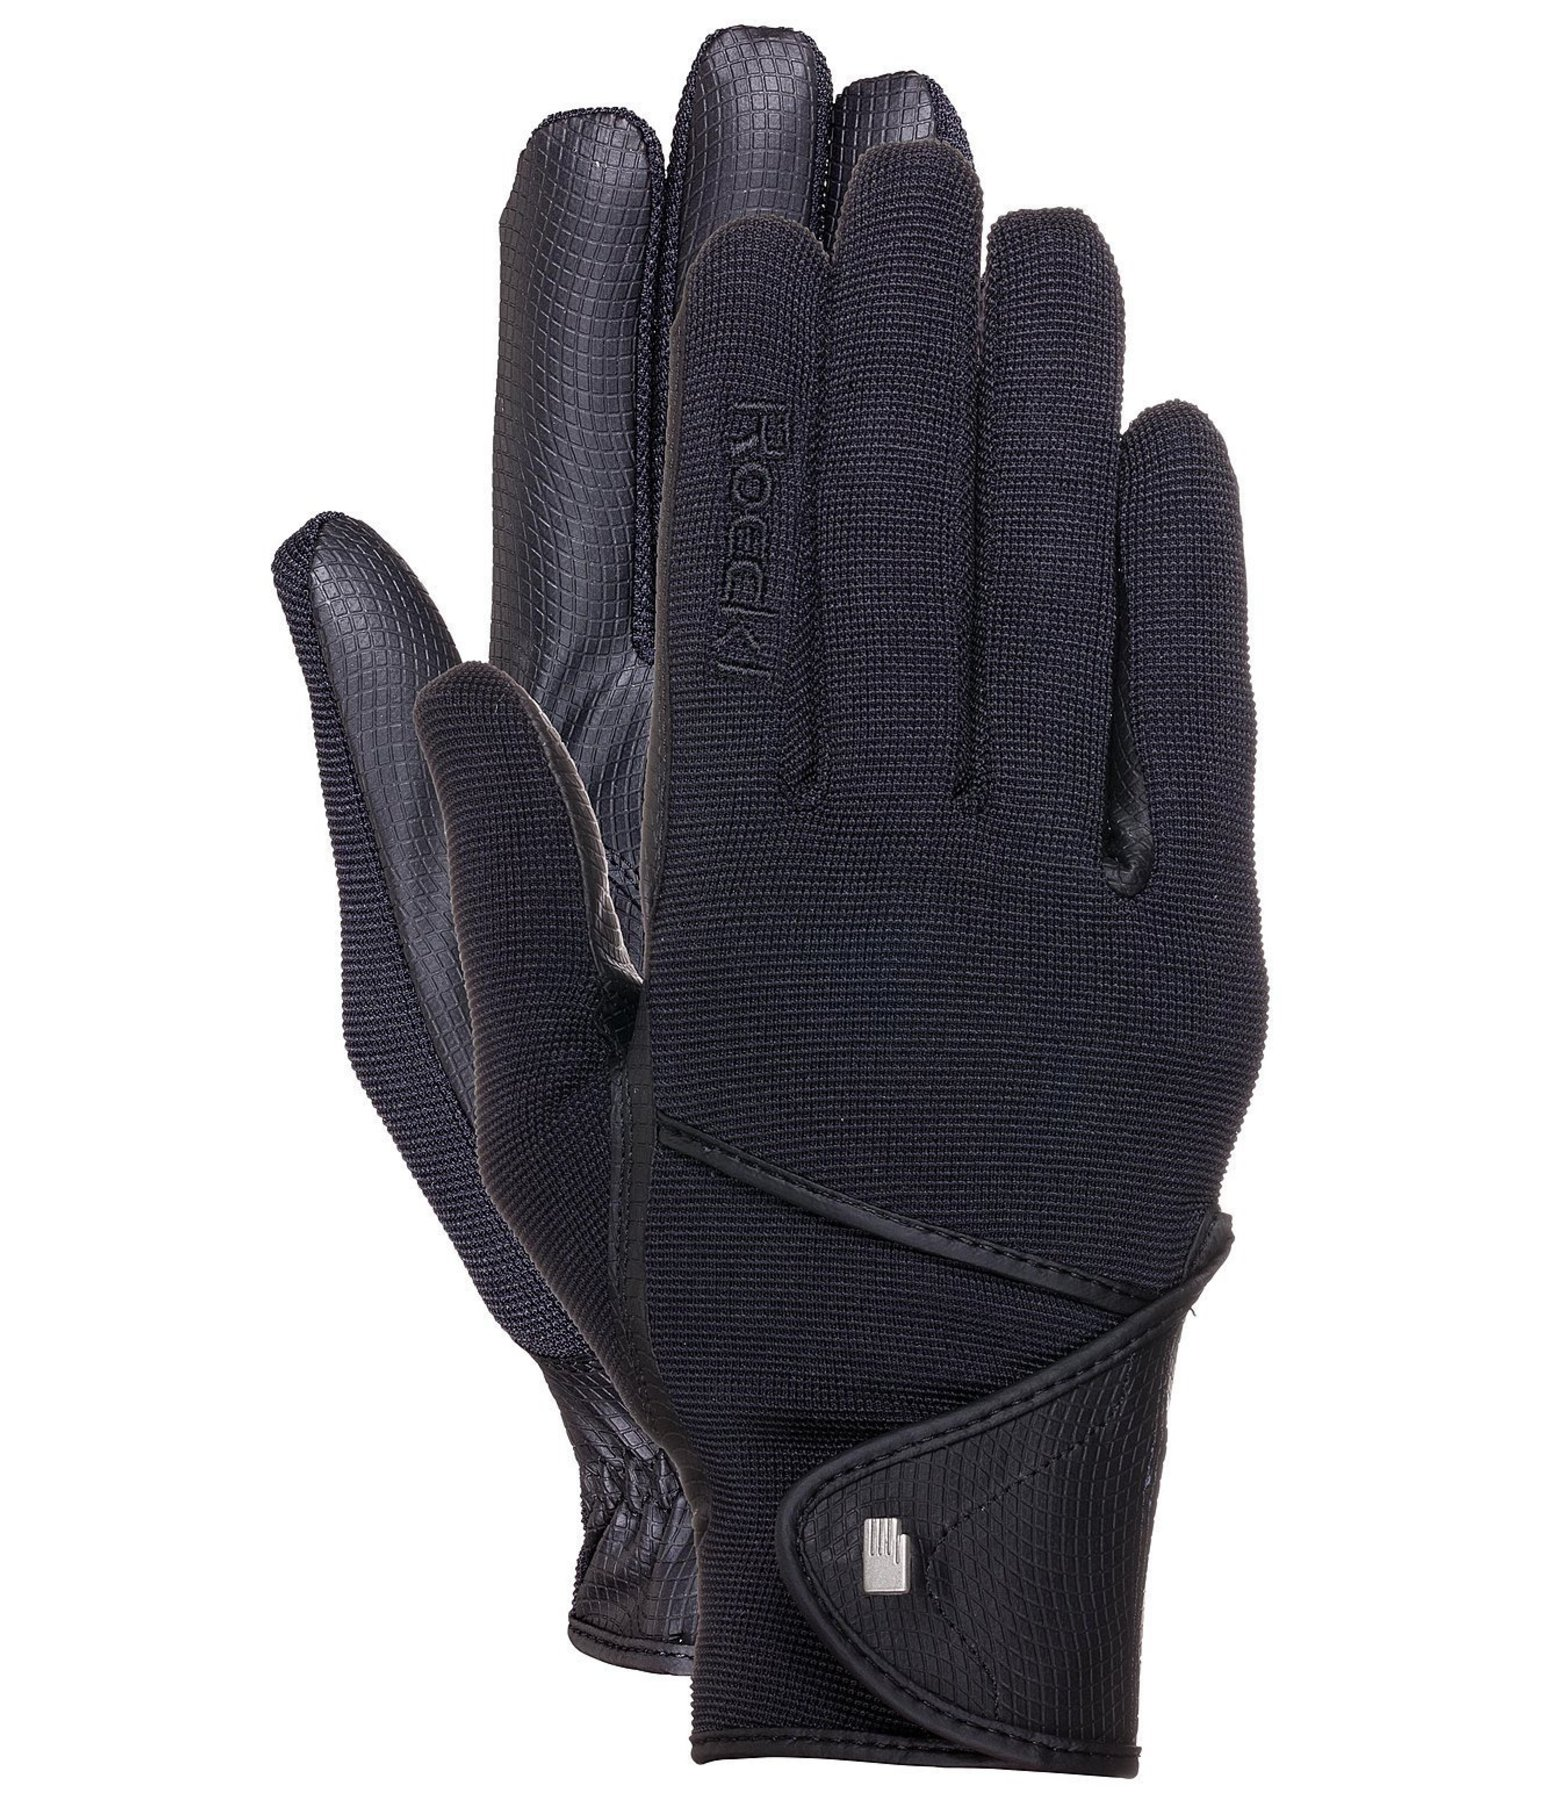 Roeckl Riding Gloves Madison - 870148-5-S